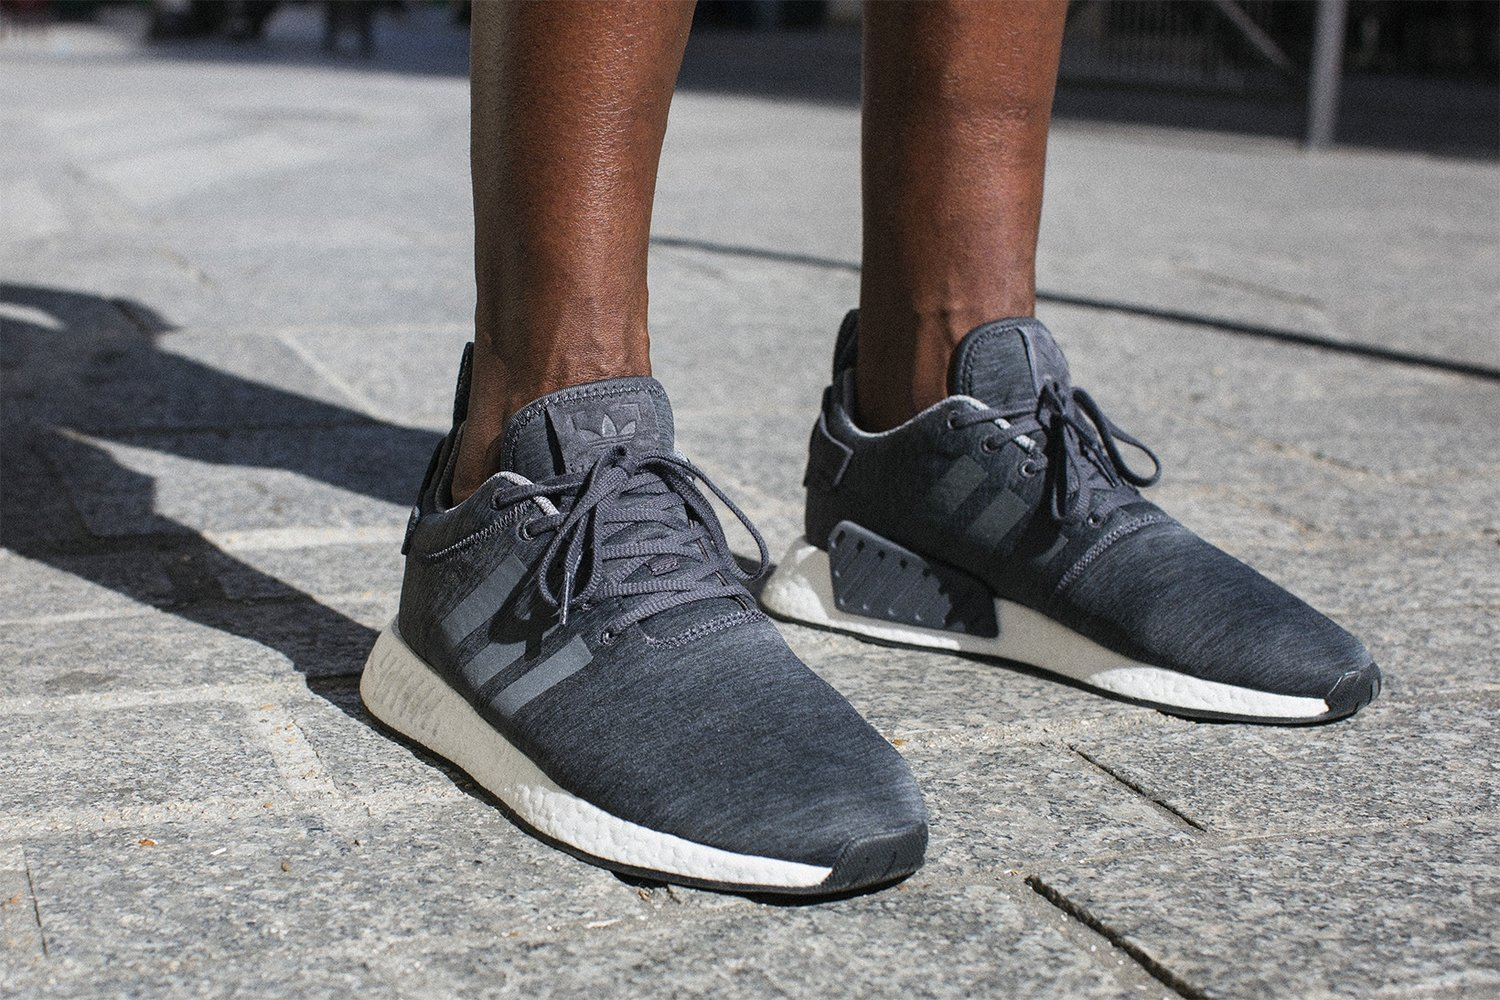 cc0857356b7b2 Now Available  SNS x adidas NMD R2